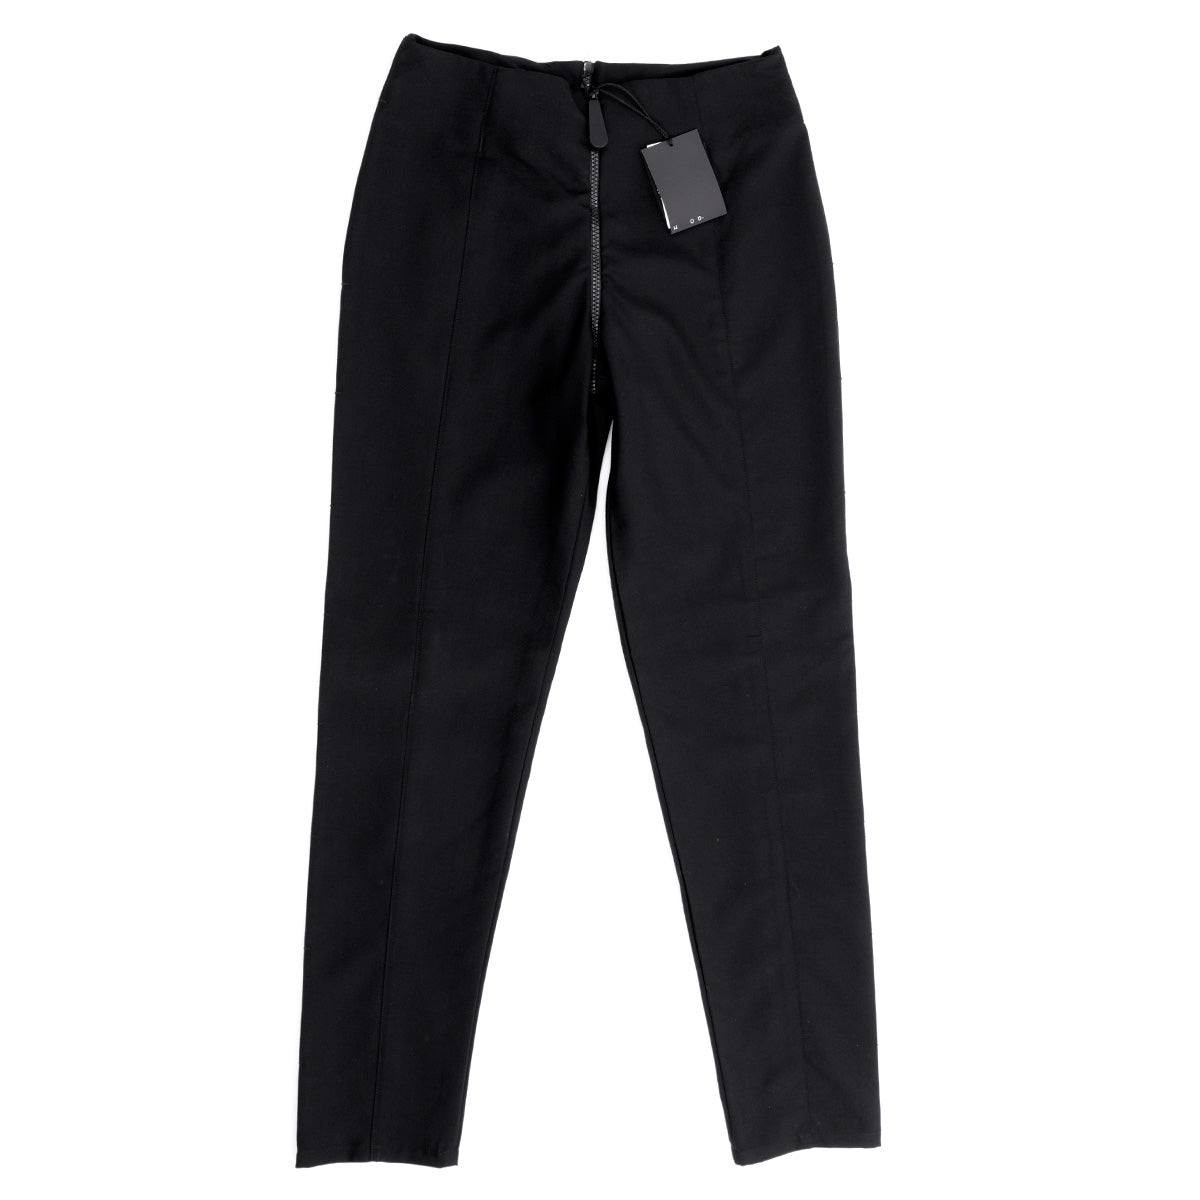 Streight Cut Trousers